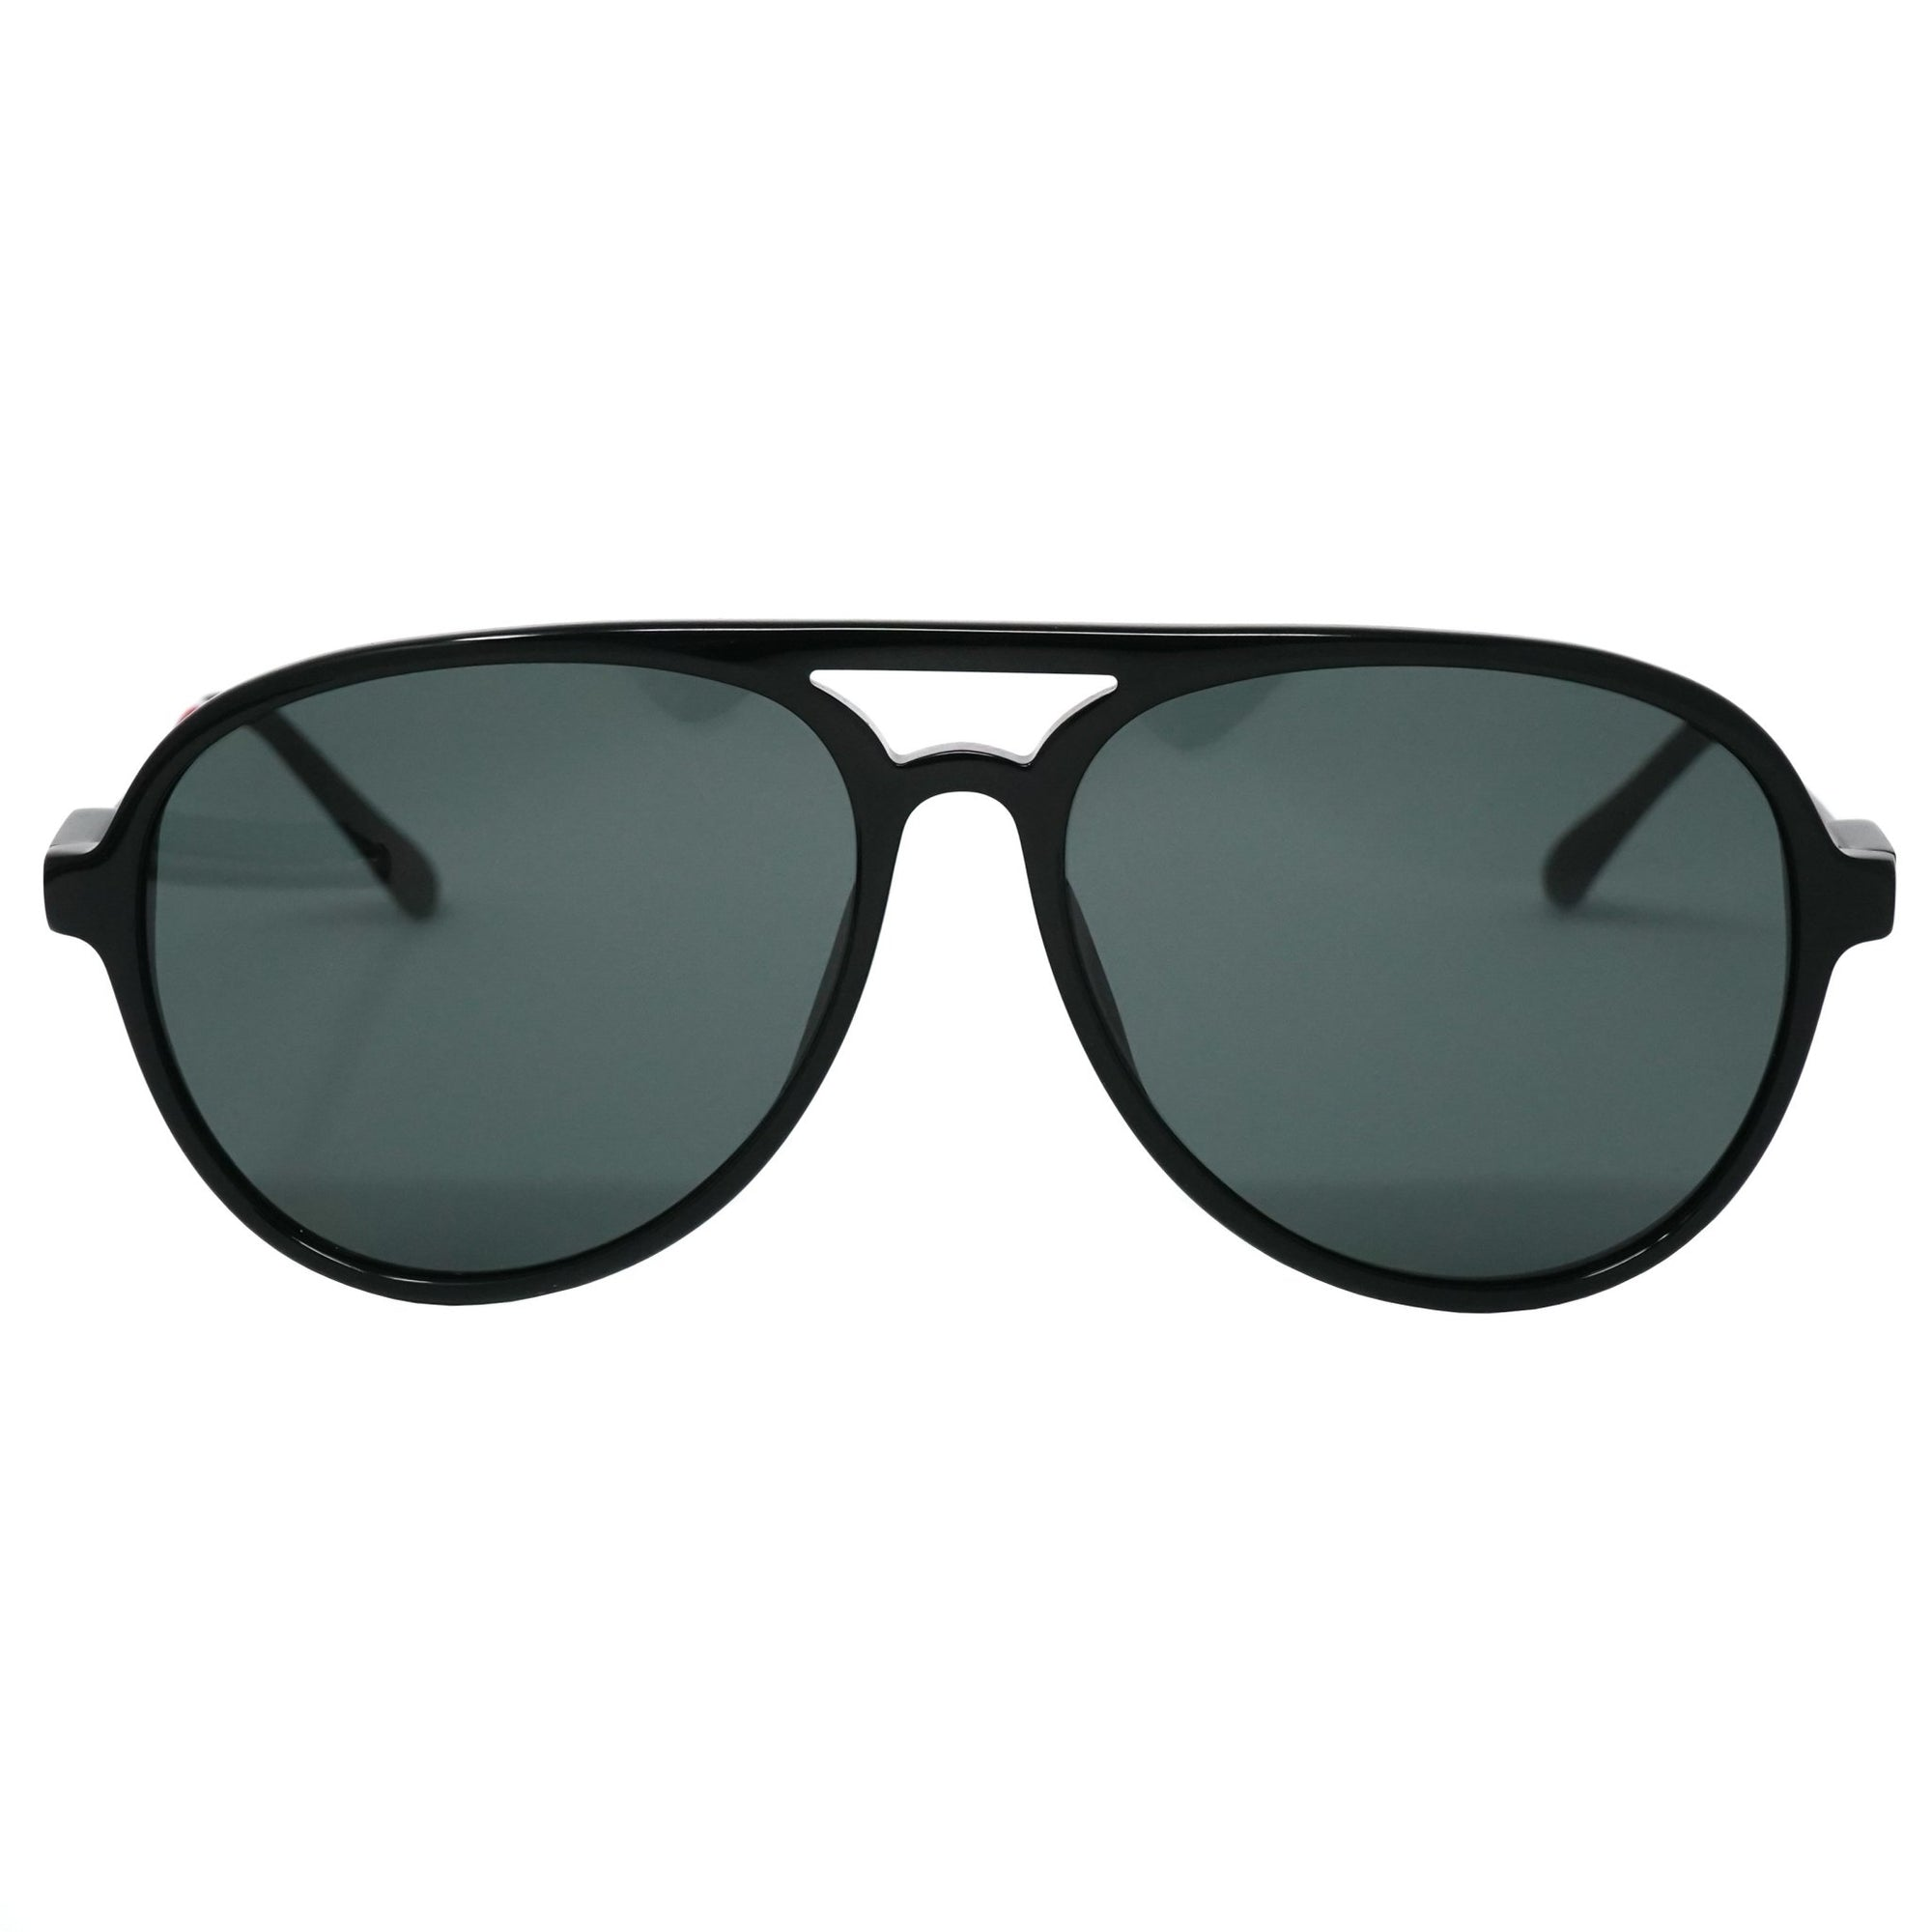 Orlebar Brown Sunglasses Aviator Black - Watches & Crystals